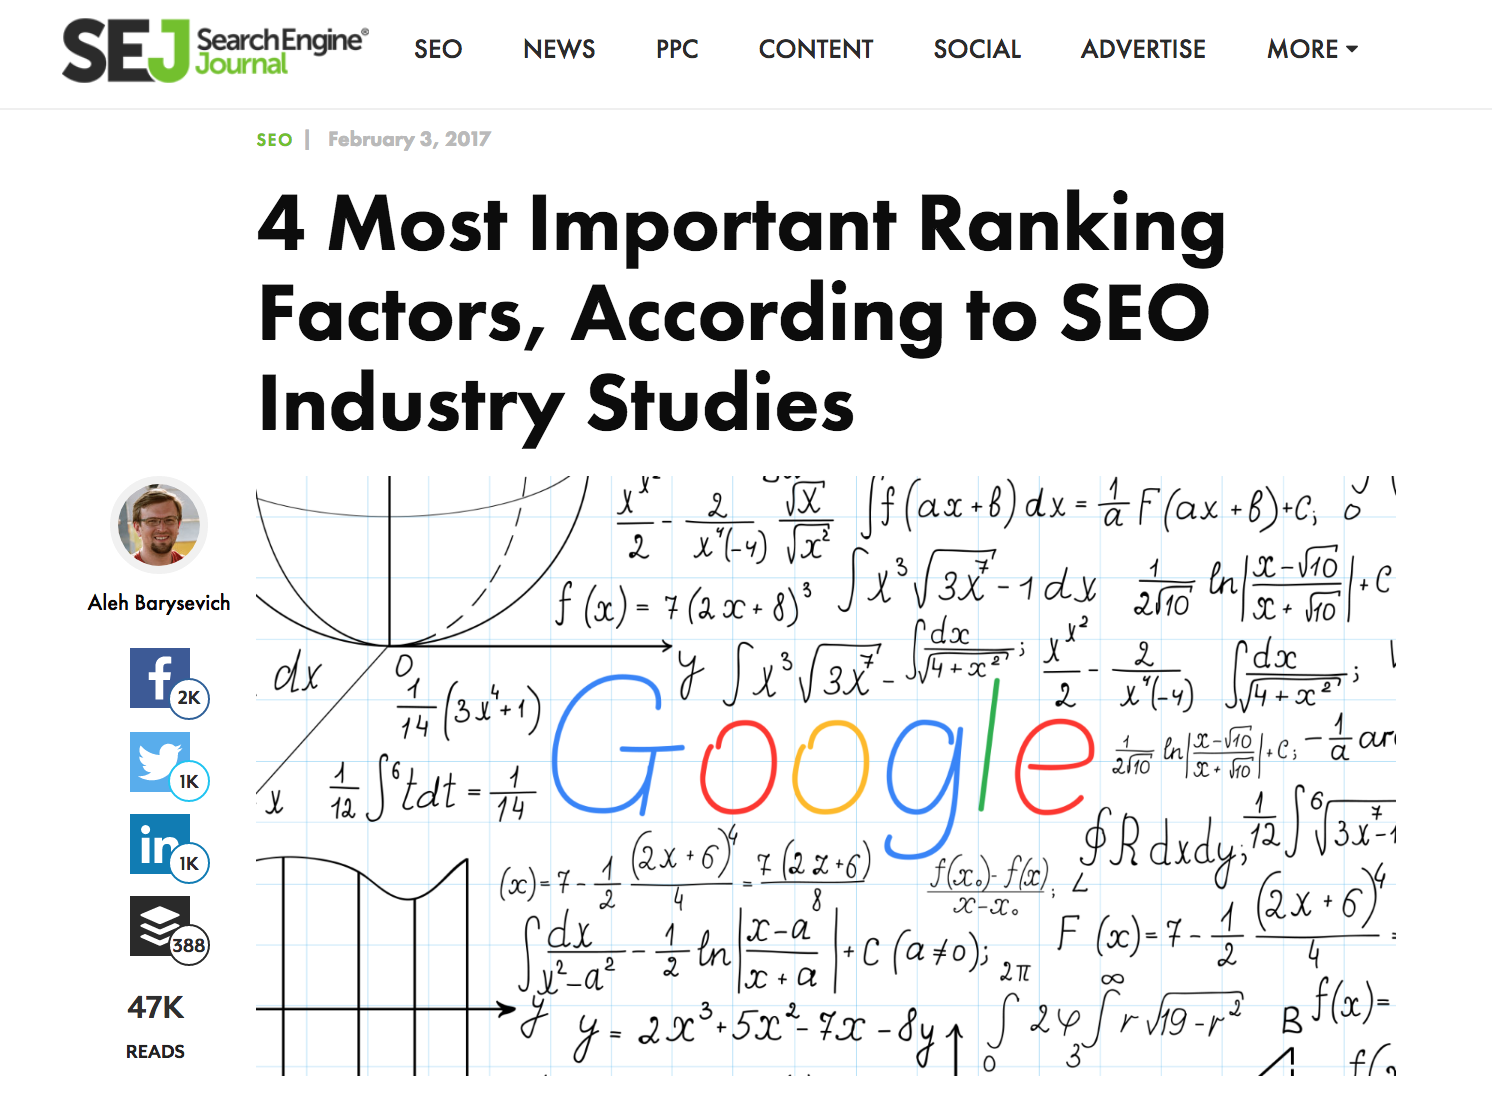 search engine journal article